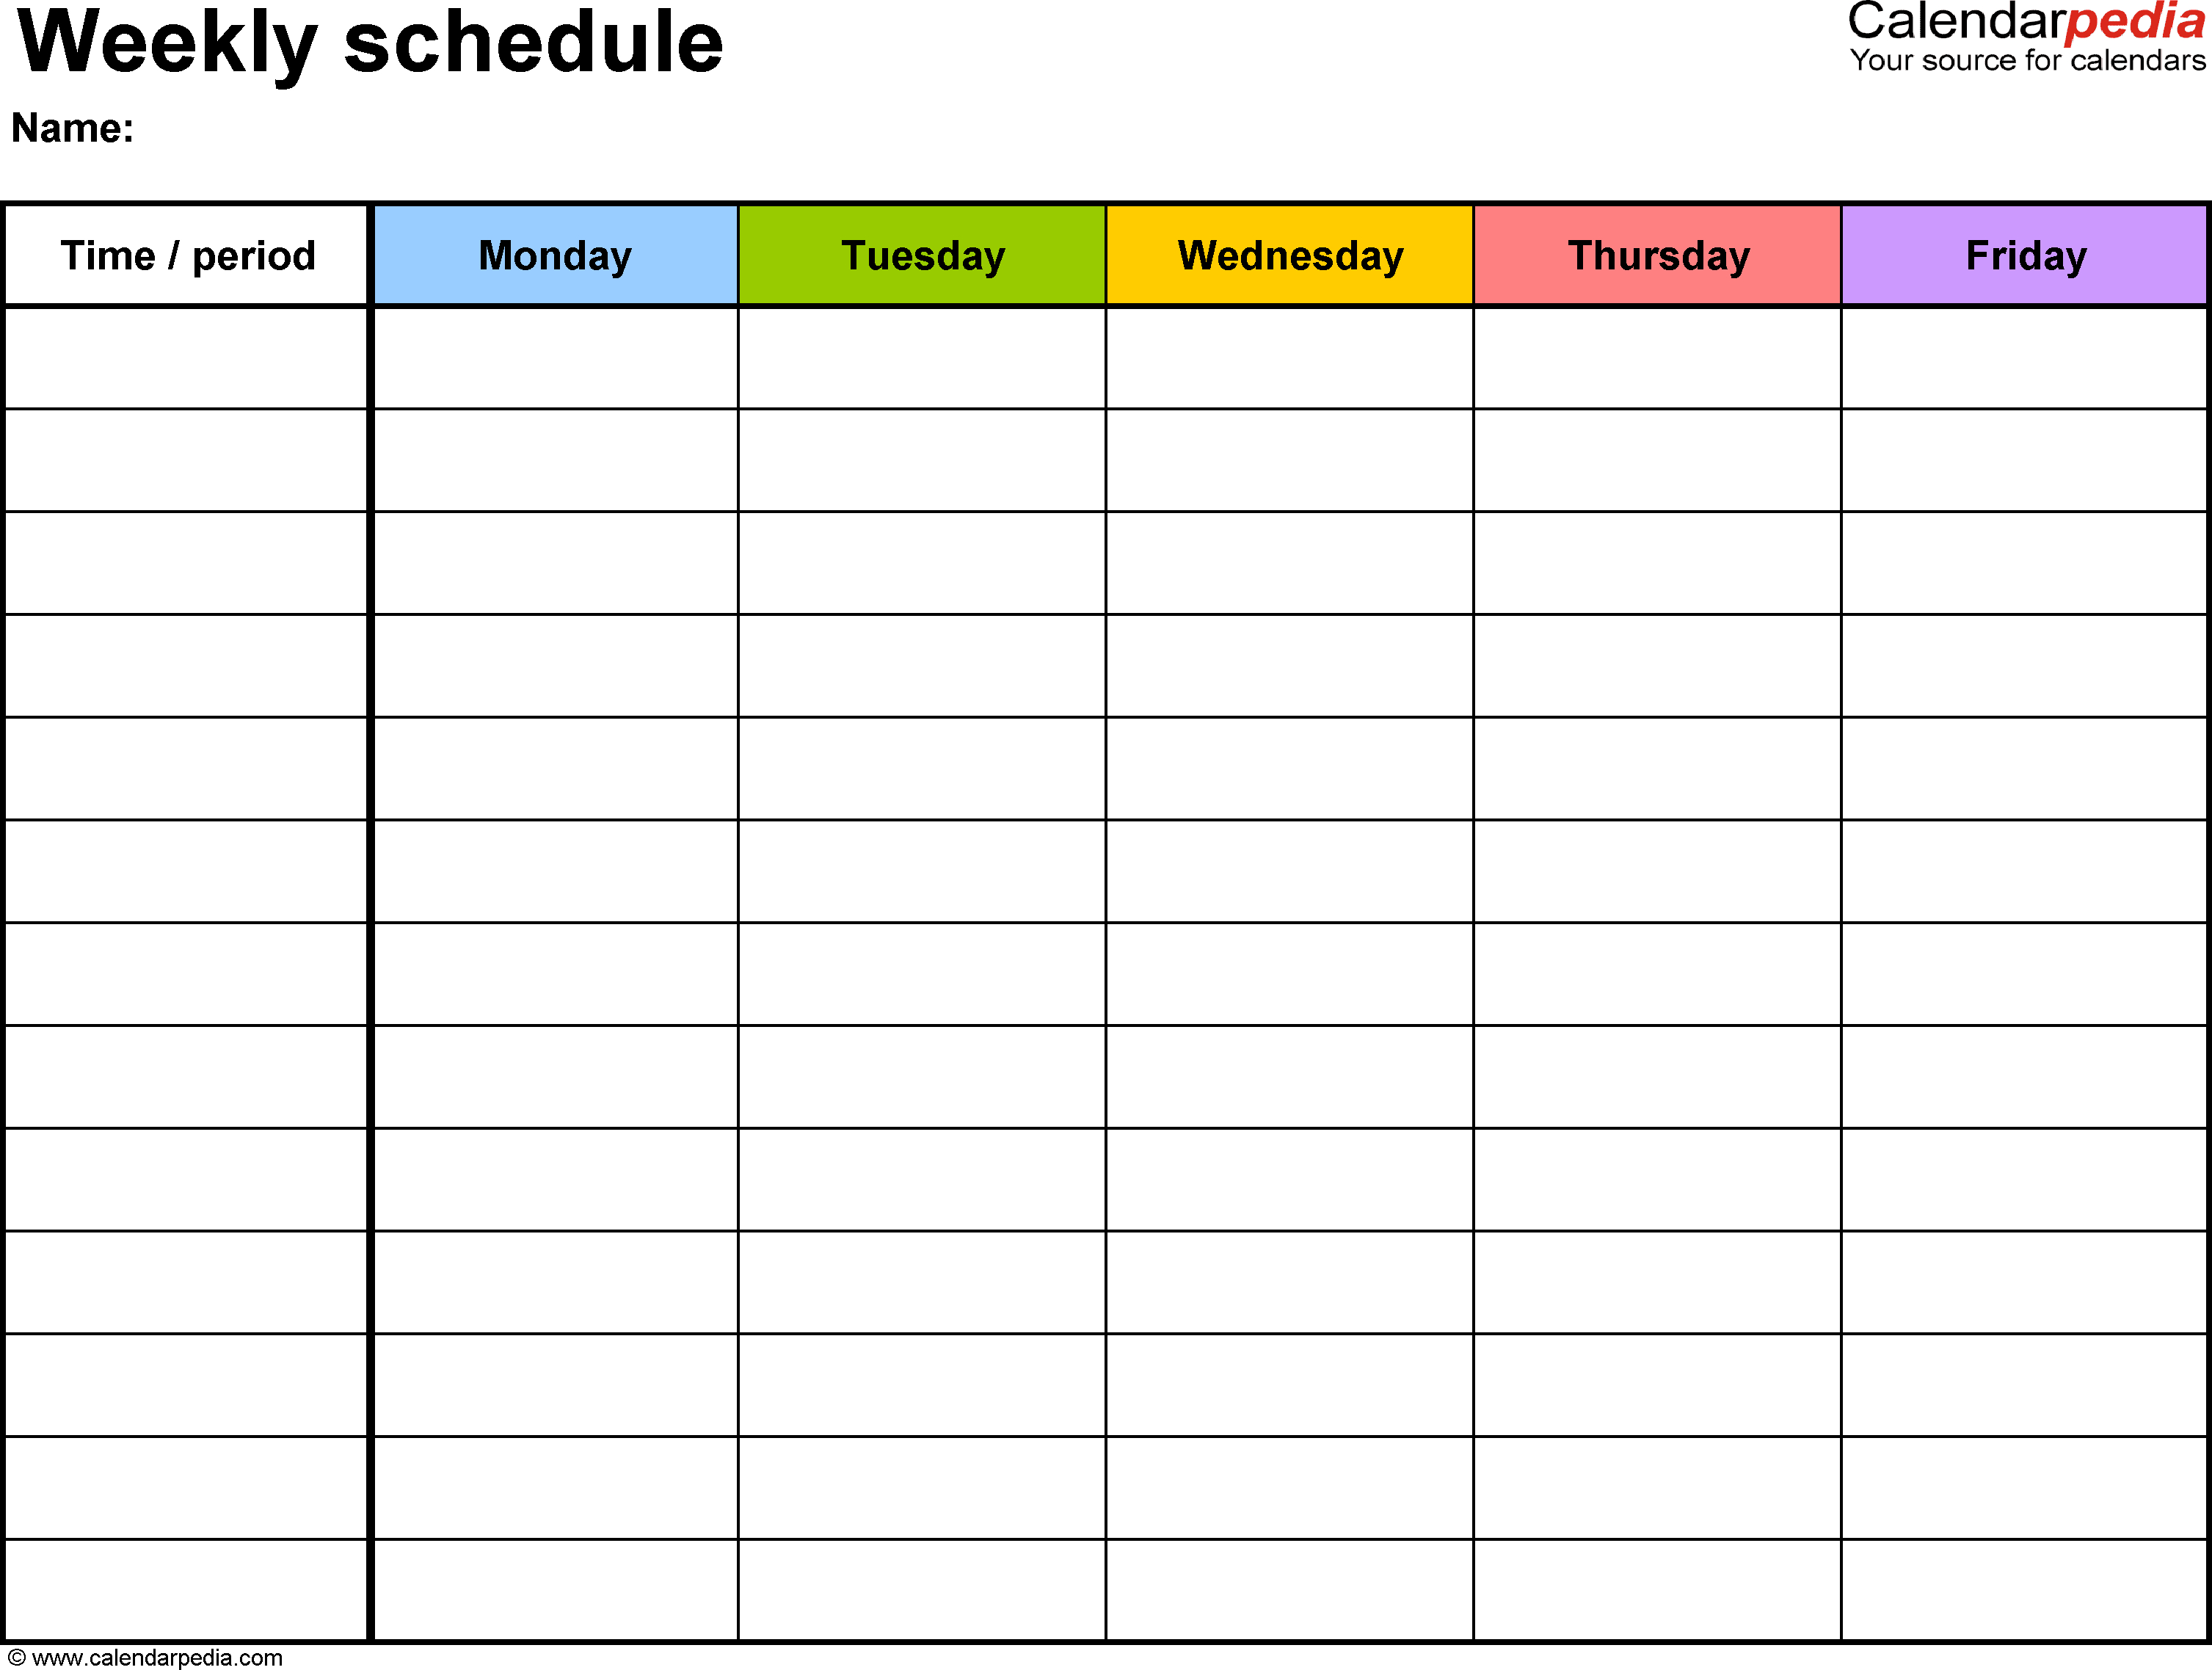 Free Weekly Schedule Templates For Excel - 18 Templates pertaining to Blank Schedule Sheet With Times